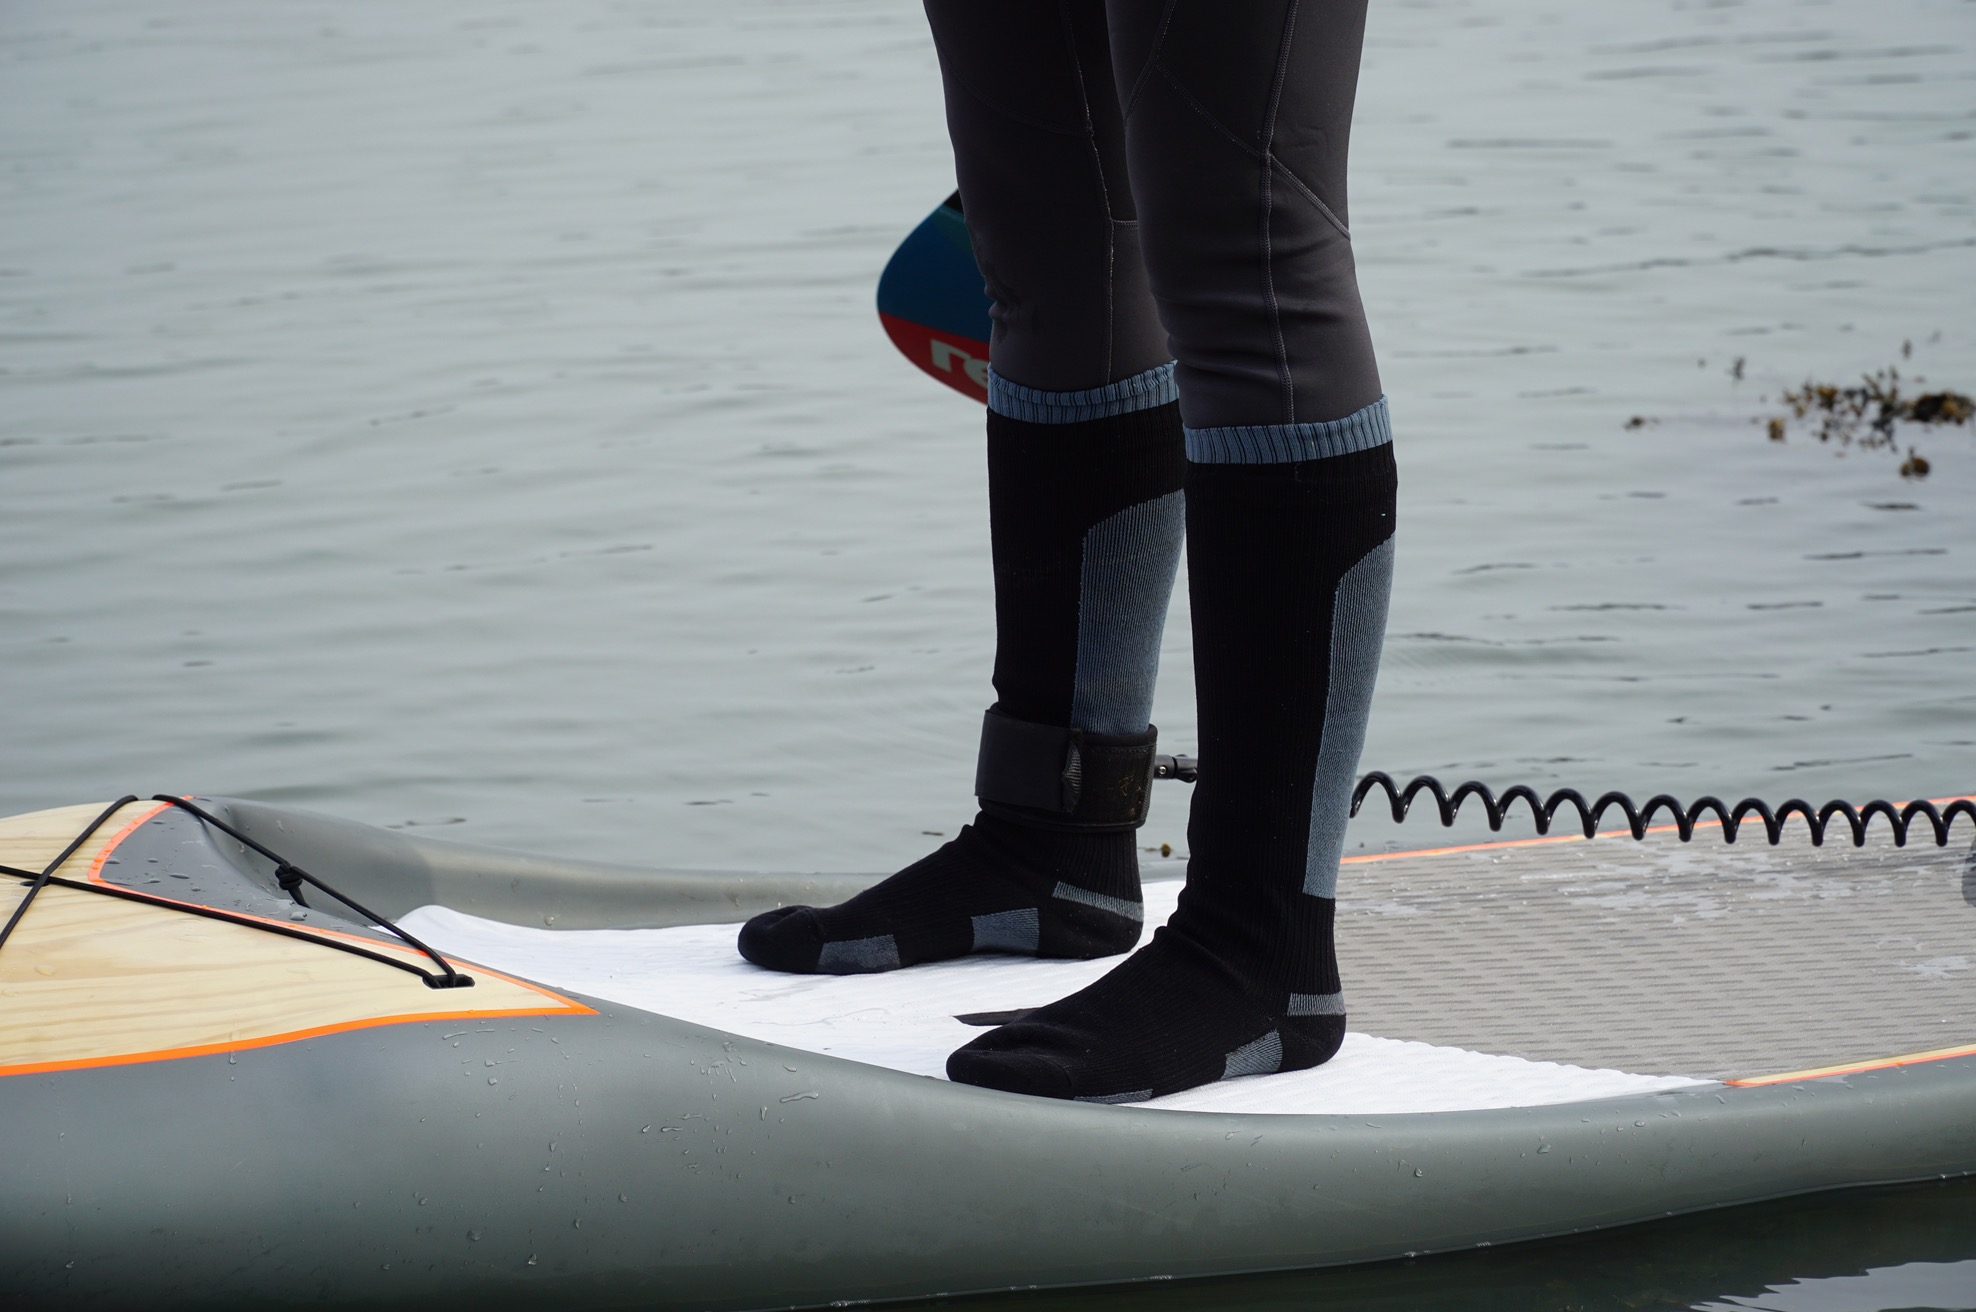 What to wear on your feet paddleboarding? - waterproof socks